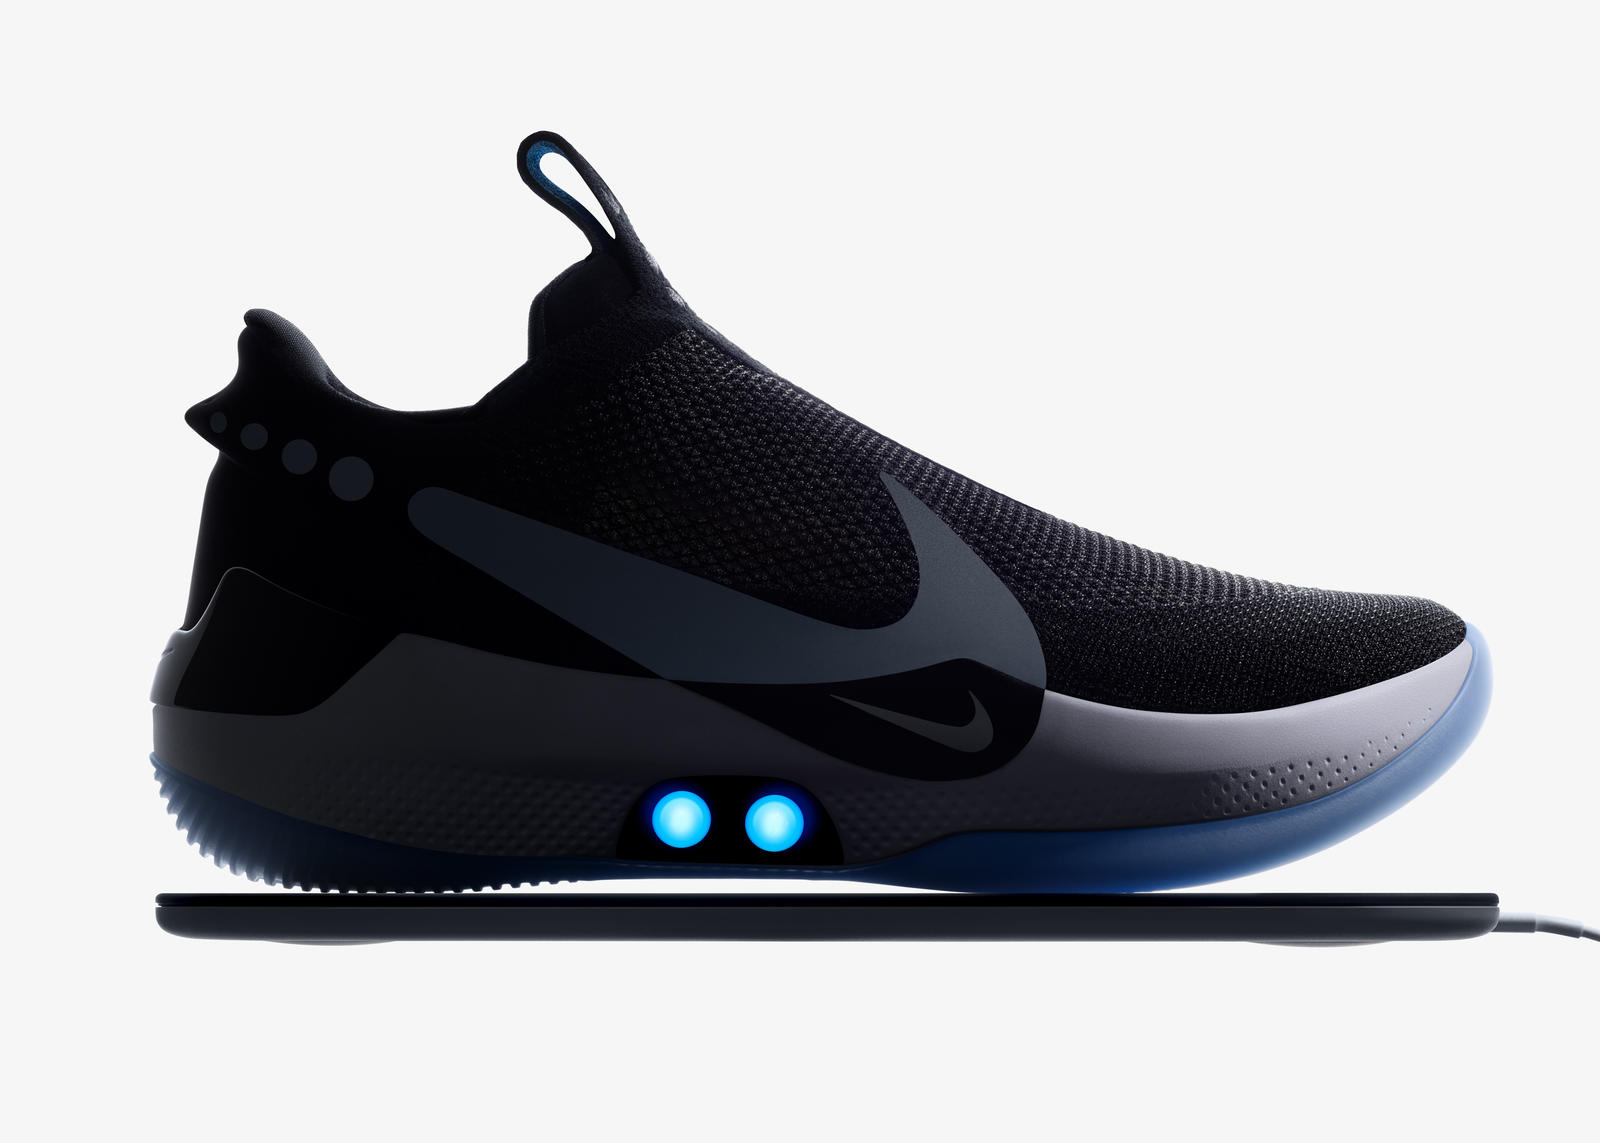 7483beca0a9 De Nike Adapt BB strikt jouw veters met een iPhone-app